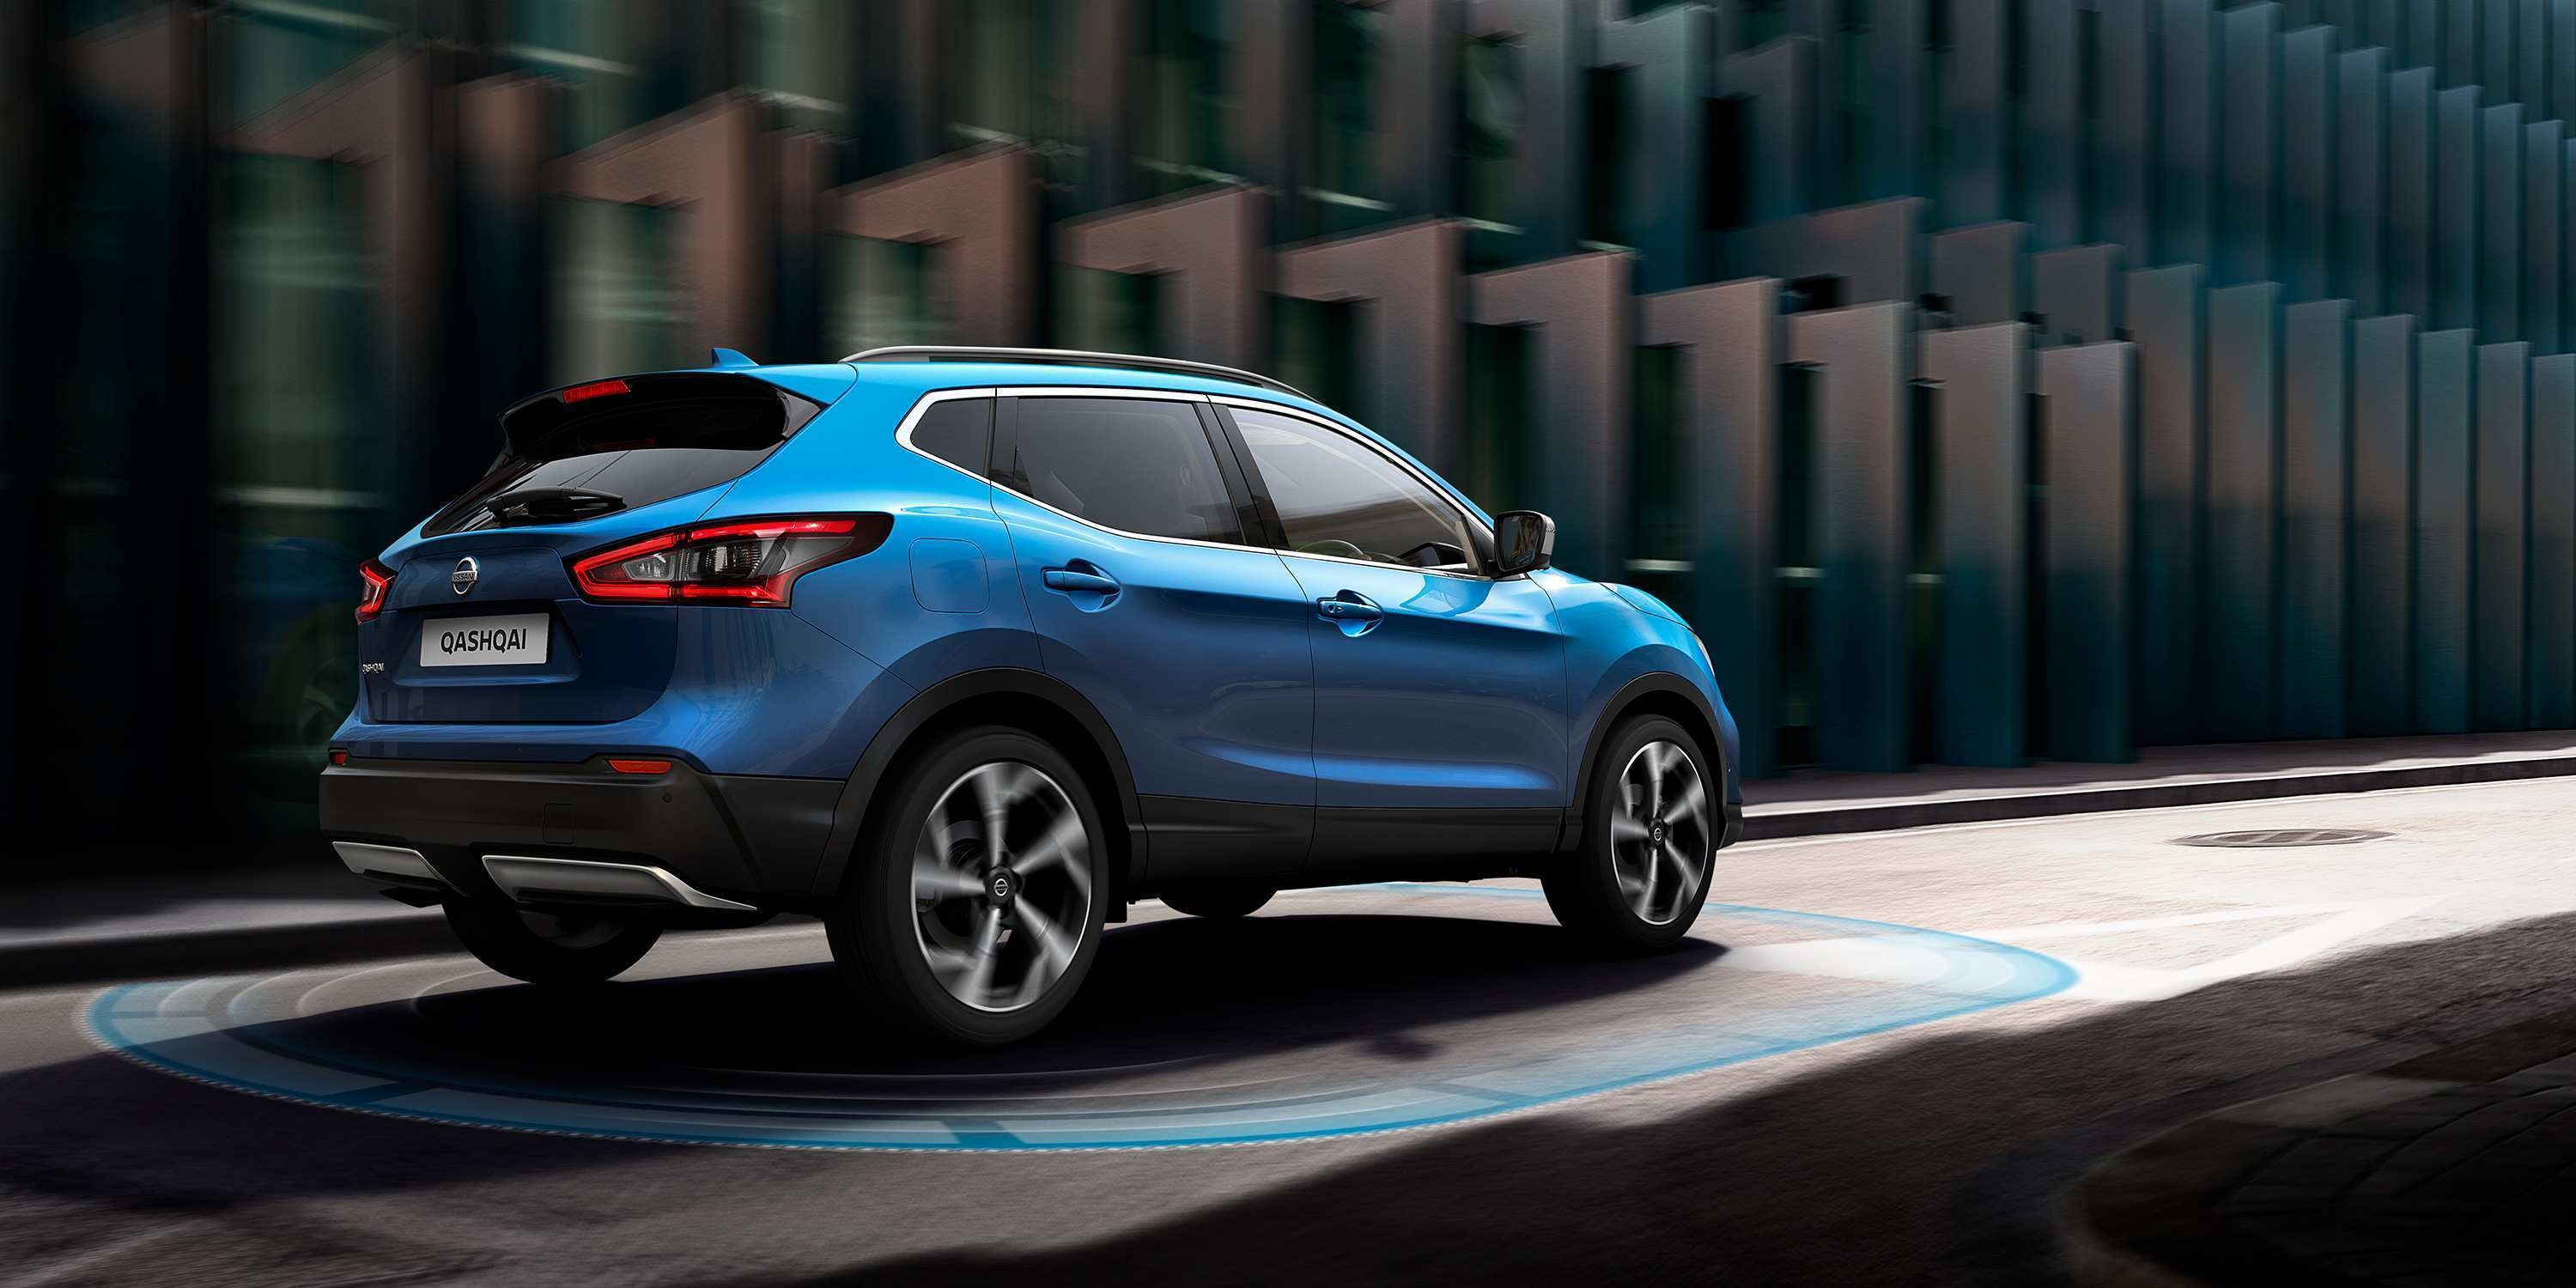 17 All New Nissan Qashqai 2020 Colors Specs by Nissan Qashqai 2020 Colors